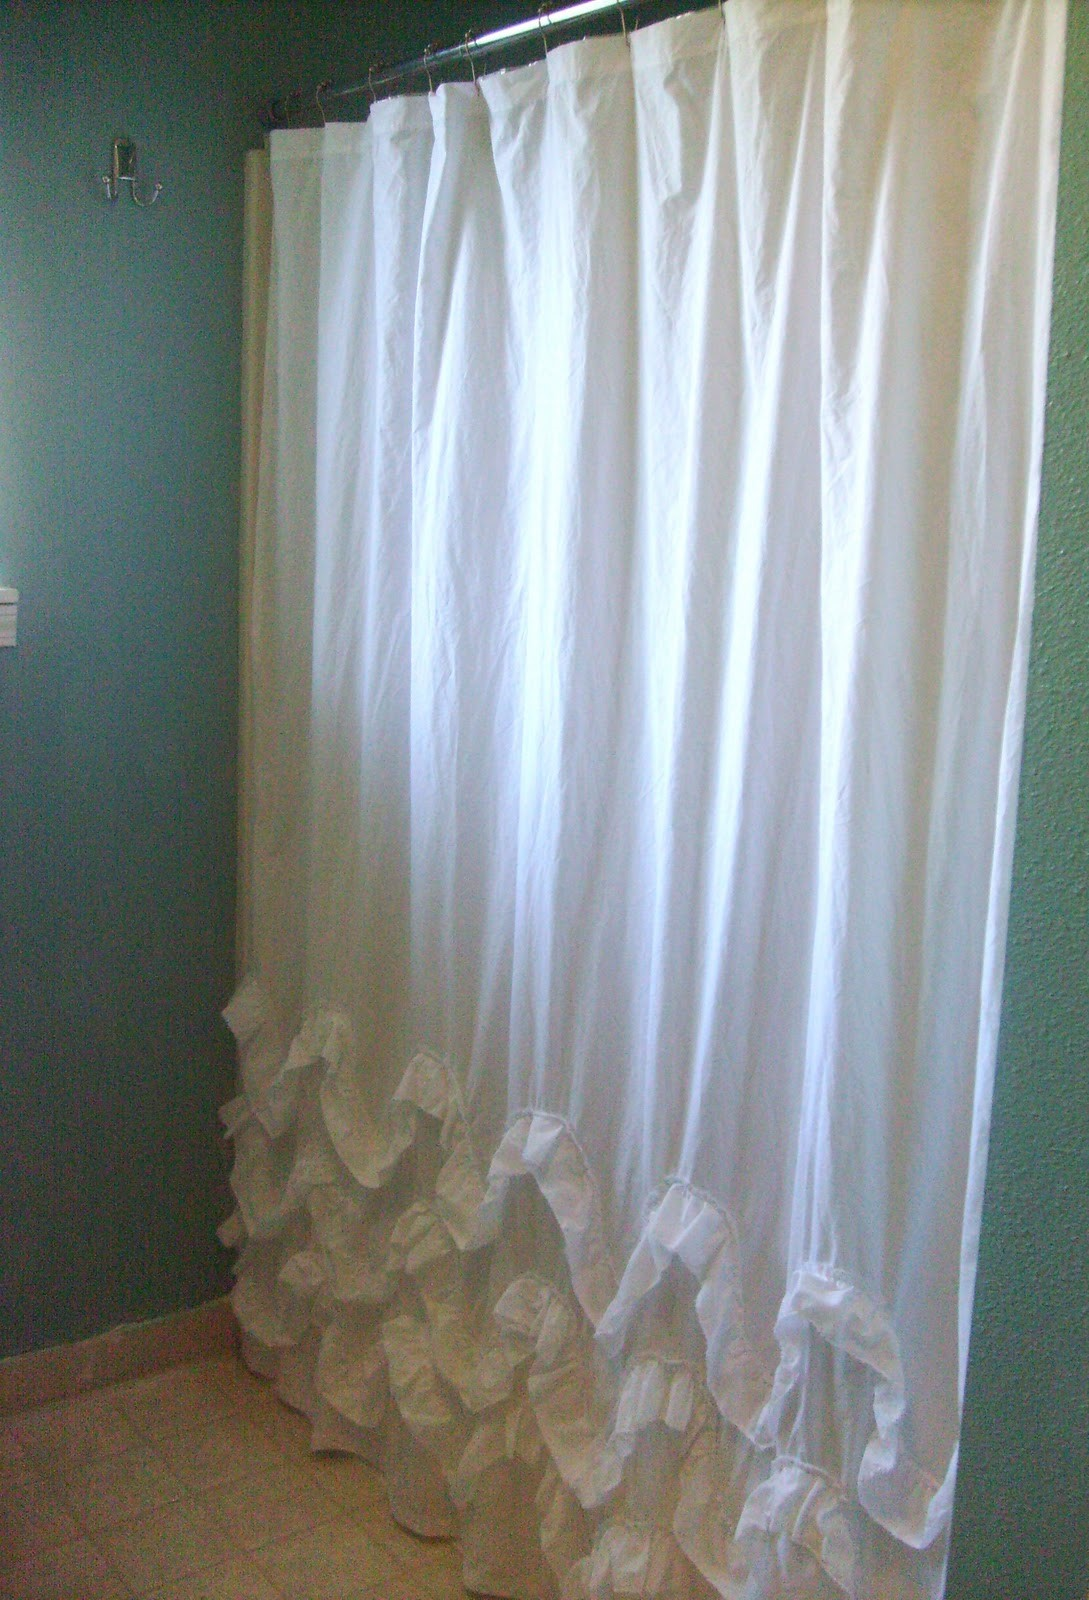 10. Simple Ruffled Shower Curtain via Simphome